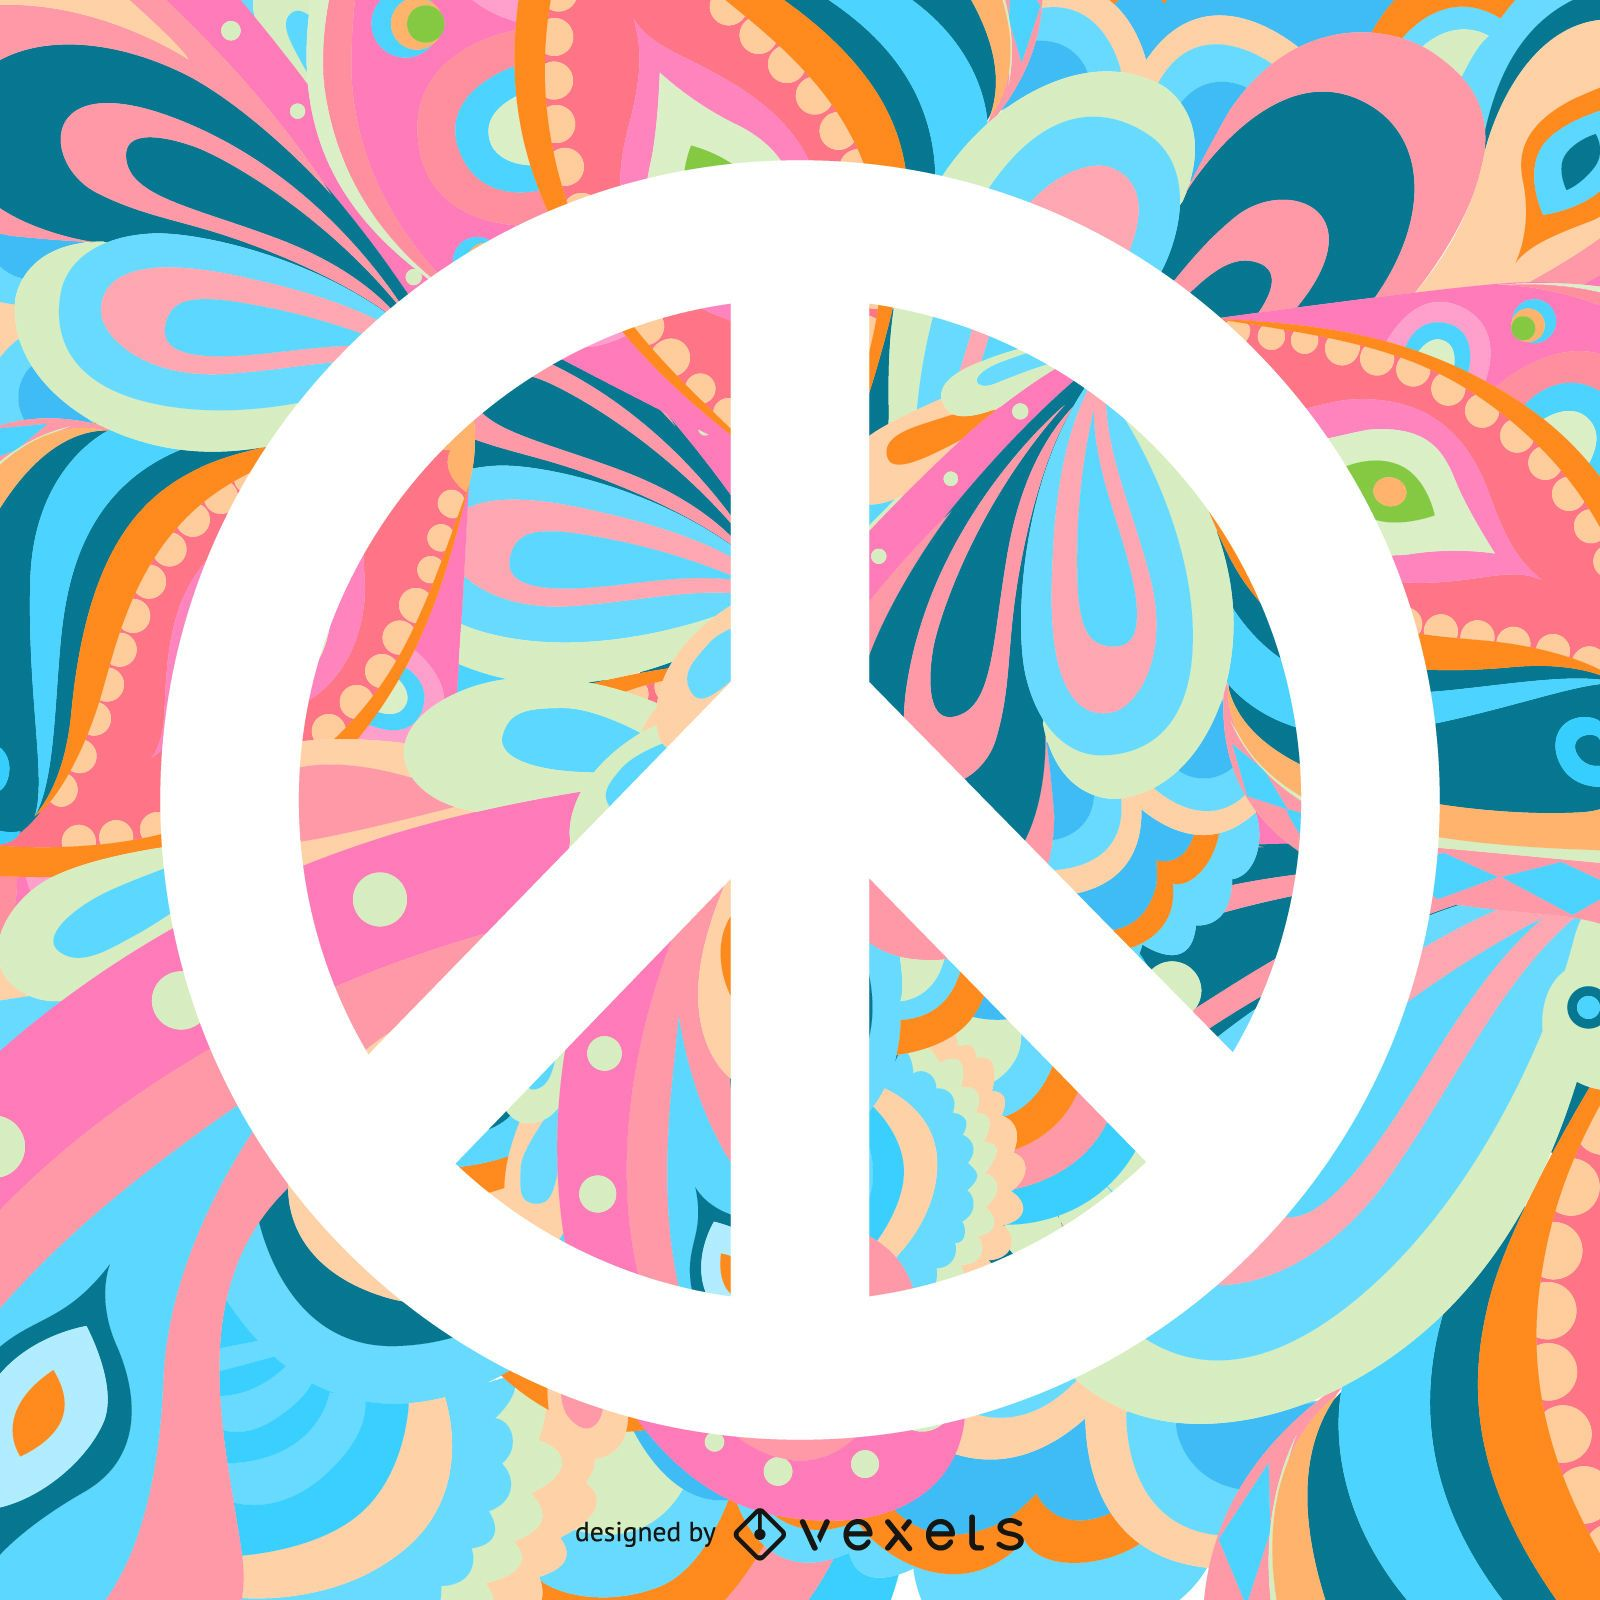 Wallpaper Of Peace: Peace Sign On Colorful Background